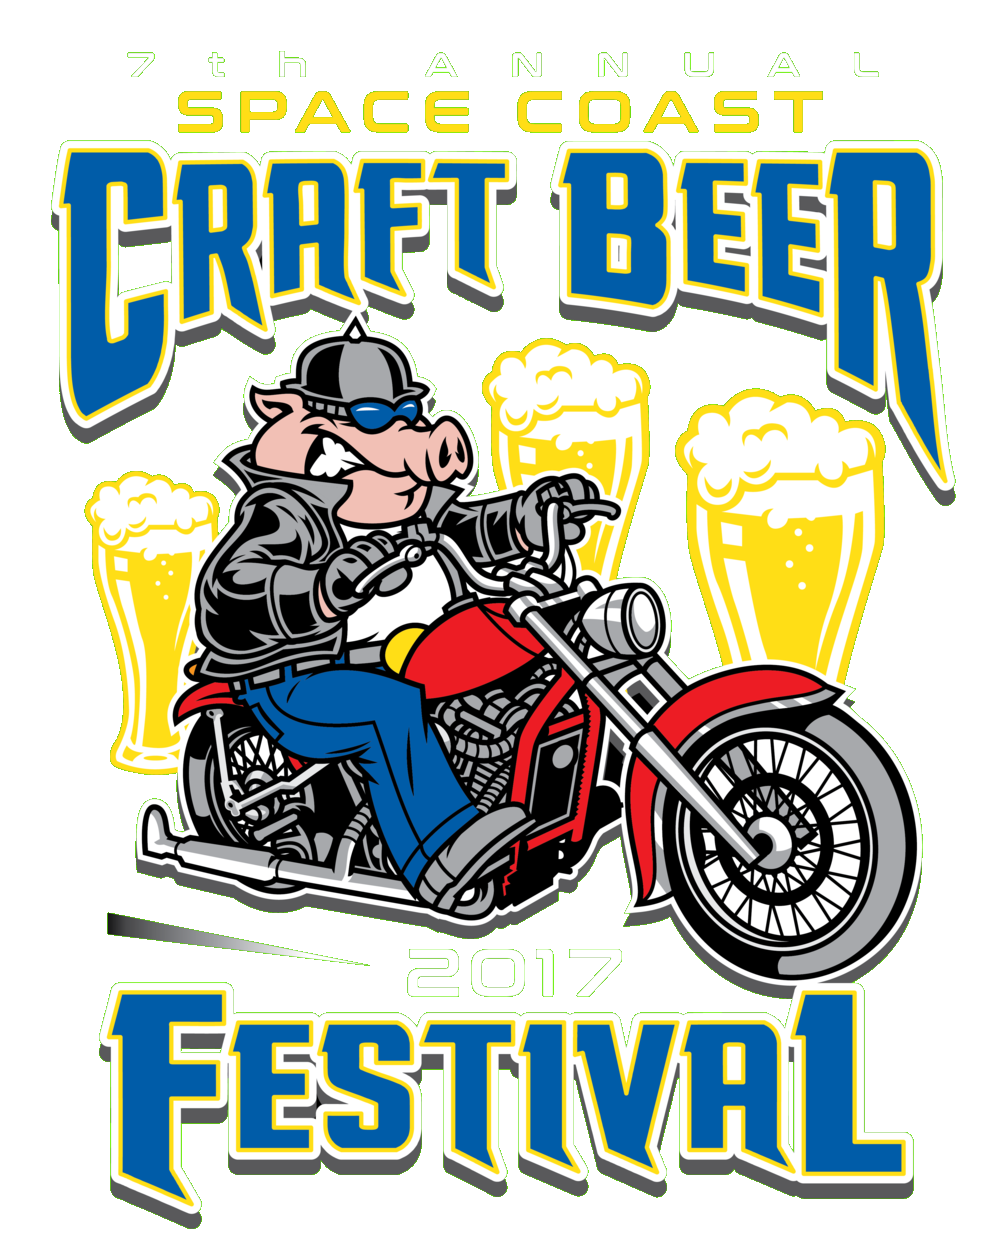 Space Coast Craft Beer Festival